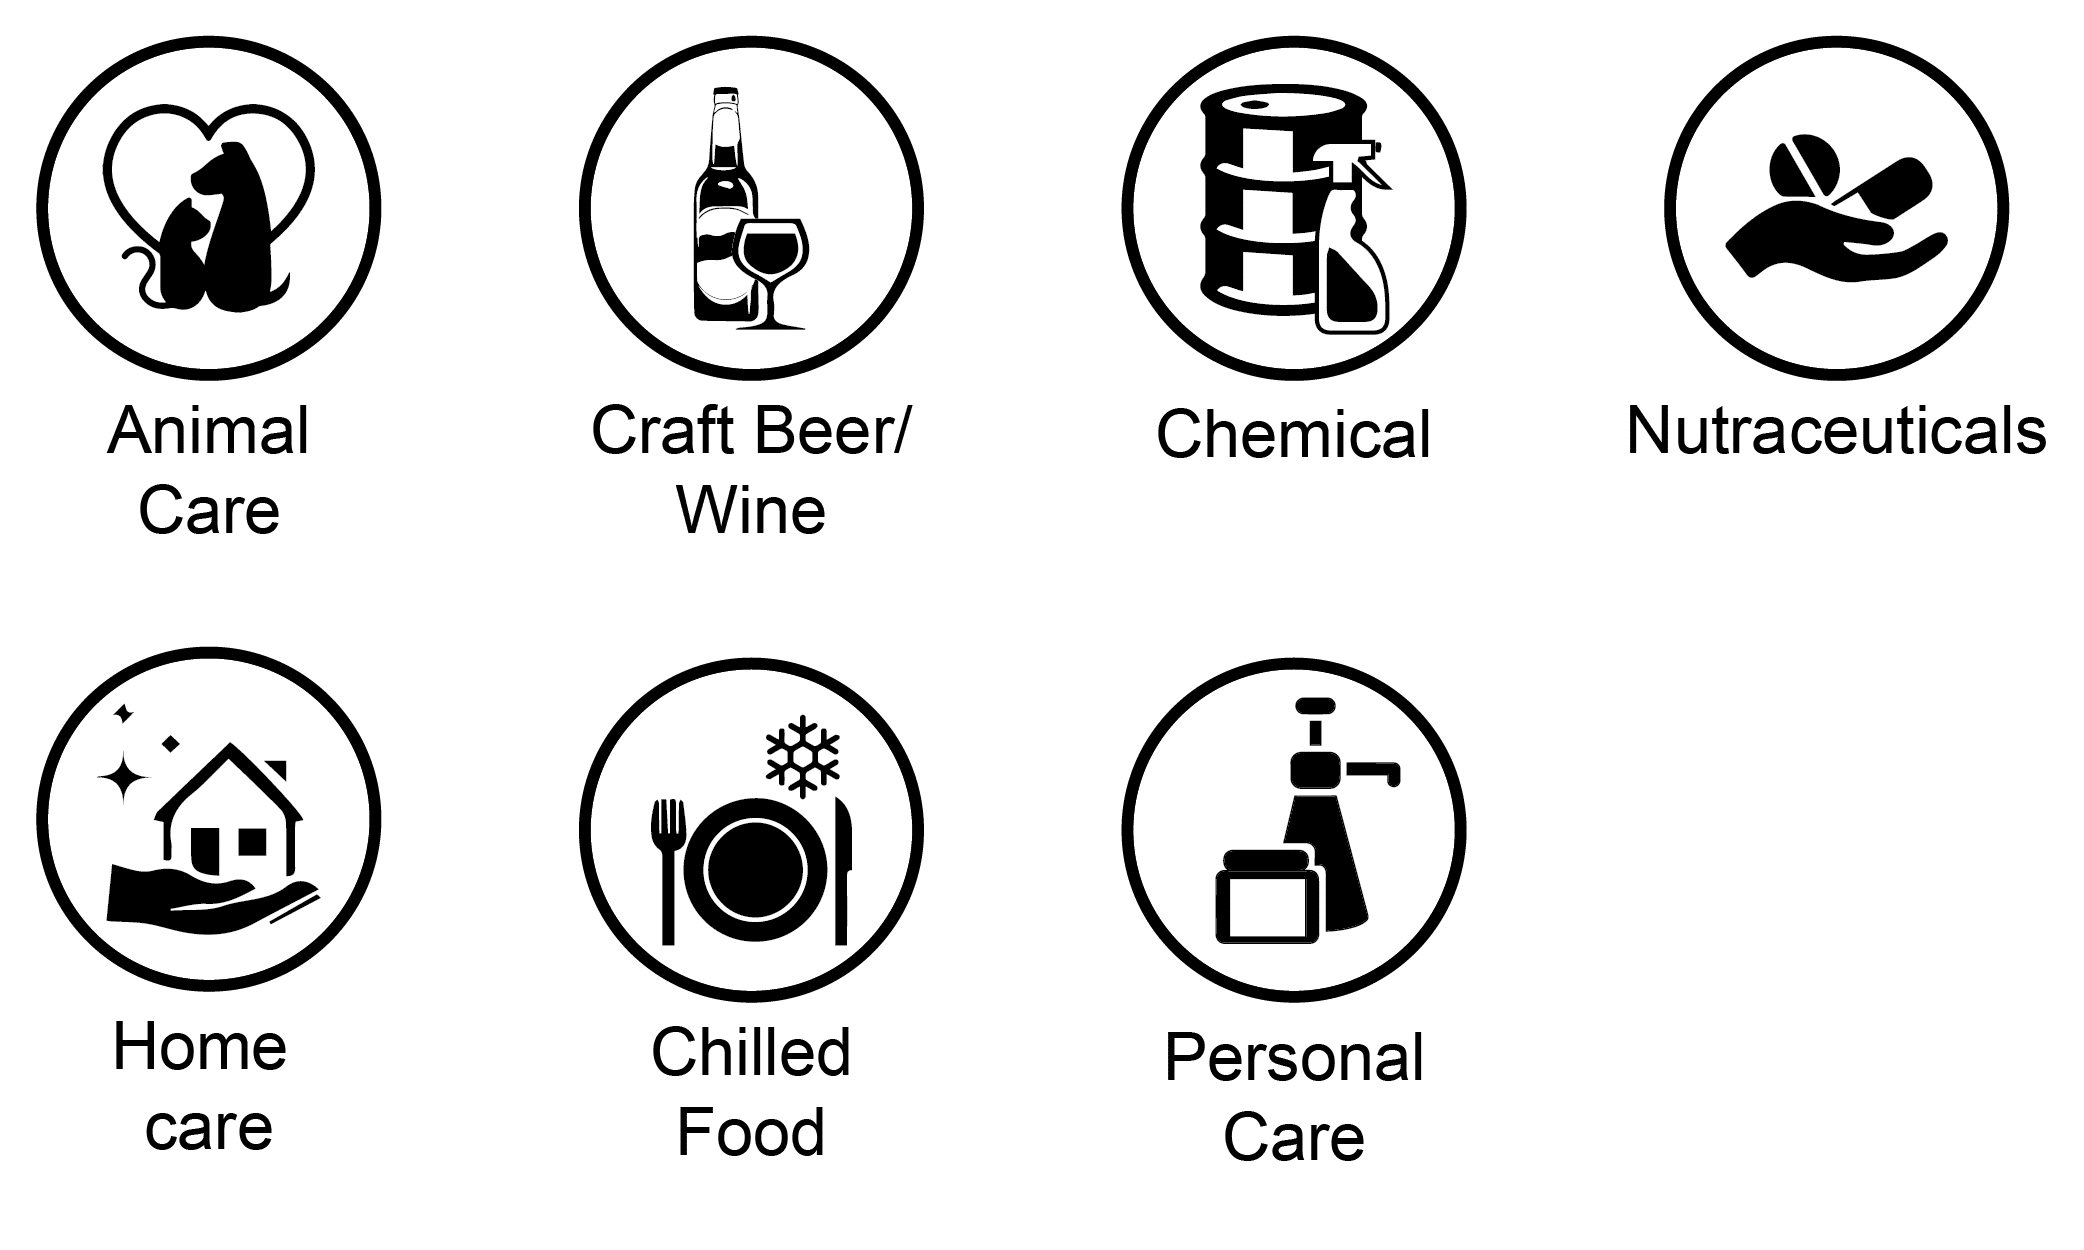 Suitable applications for VP750 industrial color label printer includes product labels for animal care, craft beer and wine, chemical, supplement, home care, body care and chilled food product label